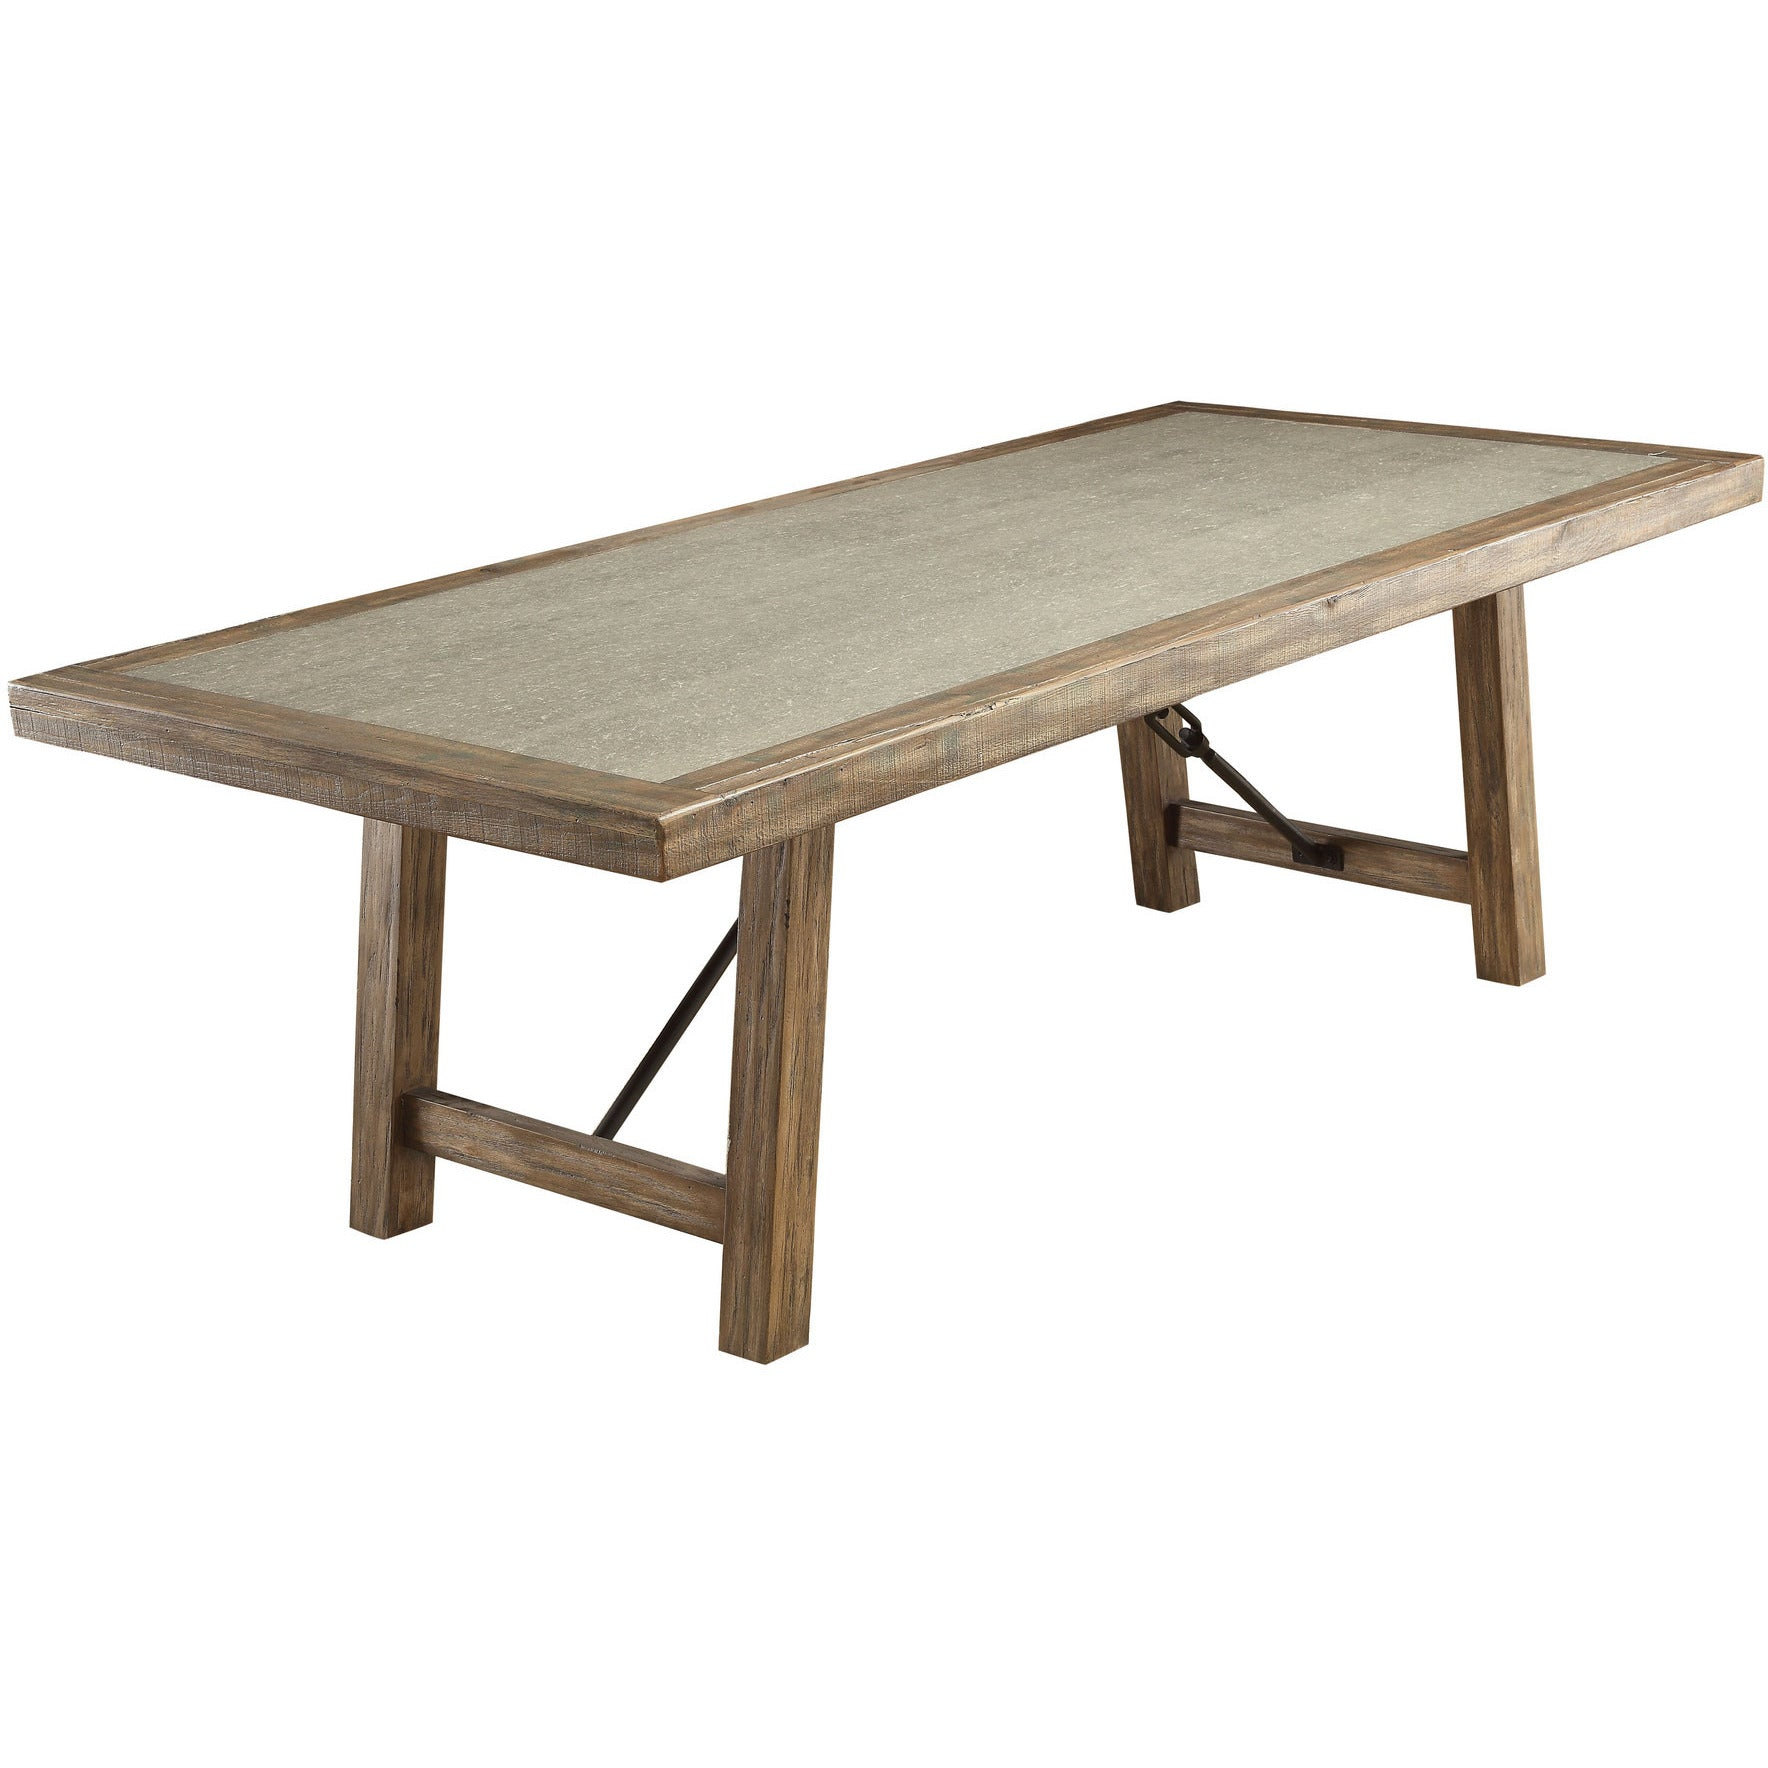 Sozier contemporary two tone dining table in rustic oak for Contemporary oak dining table